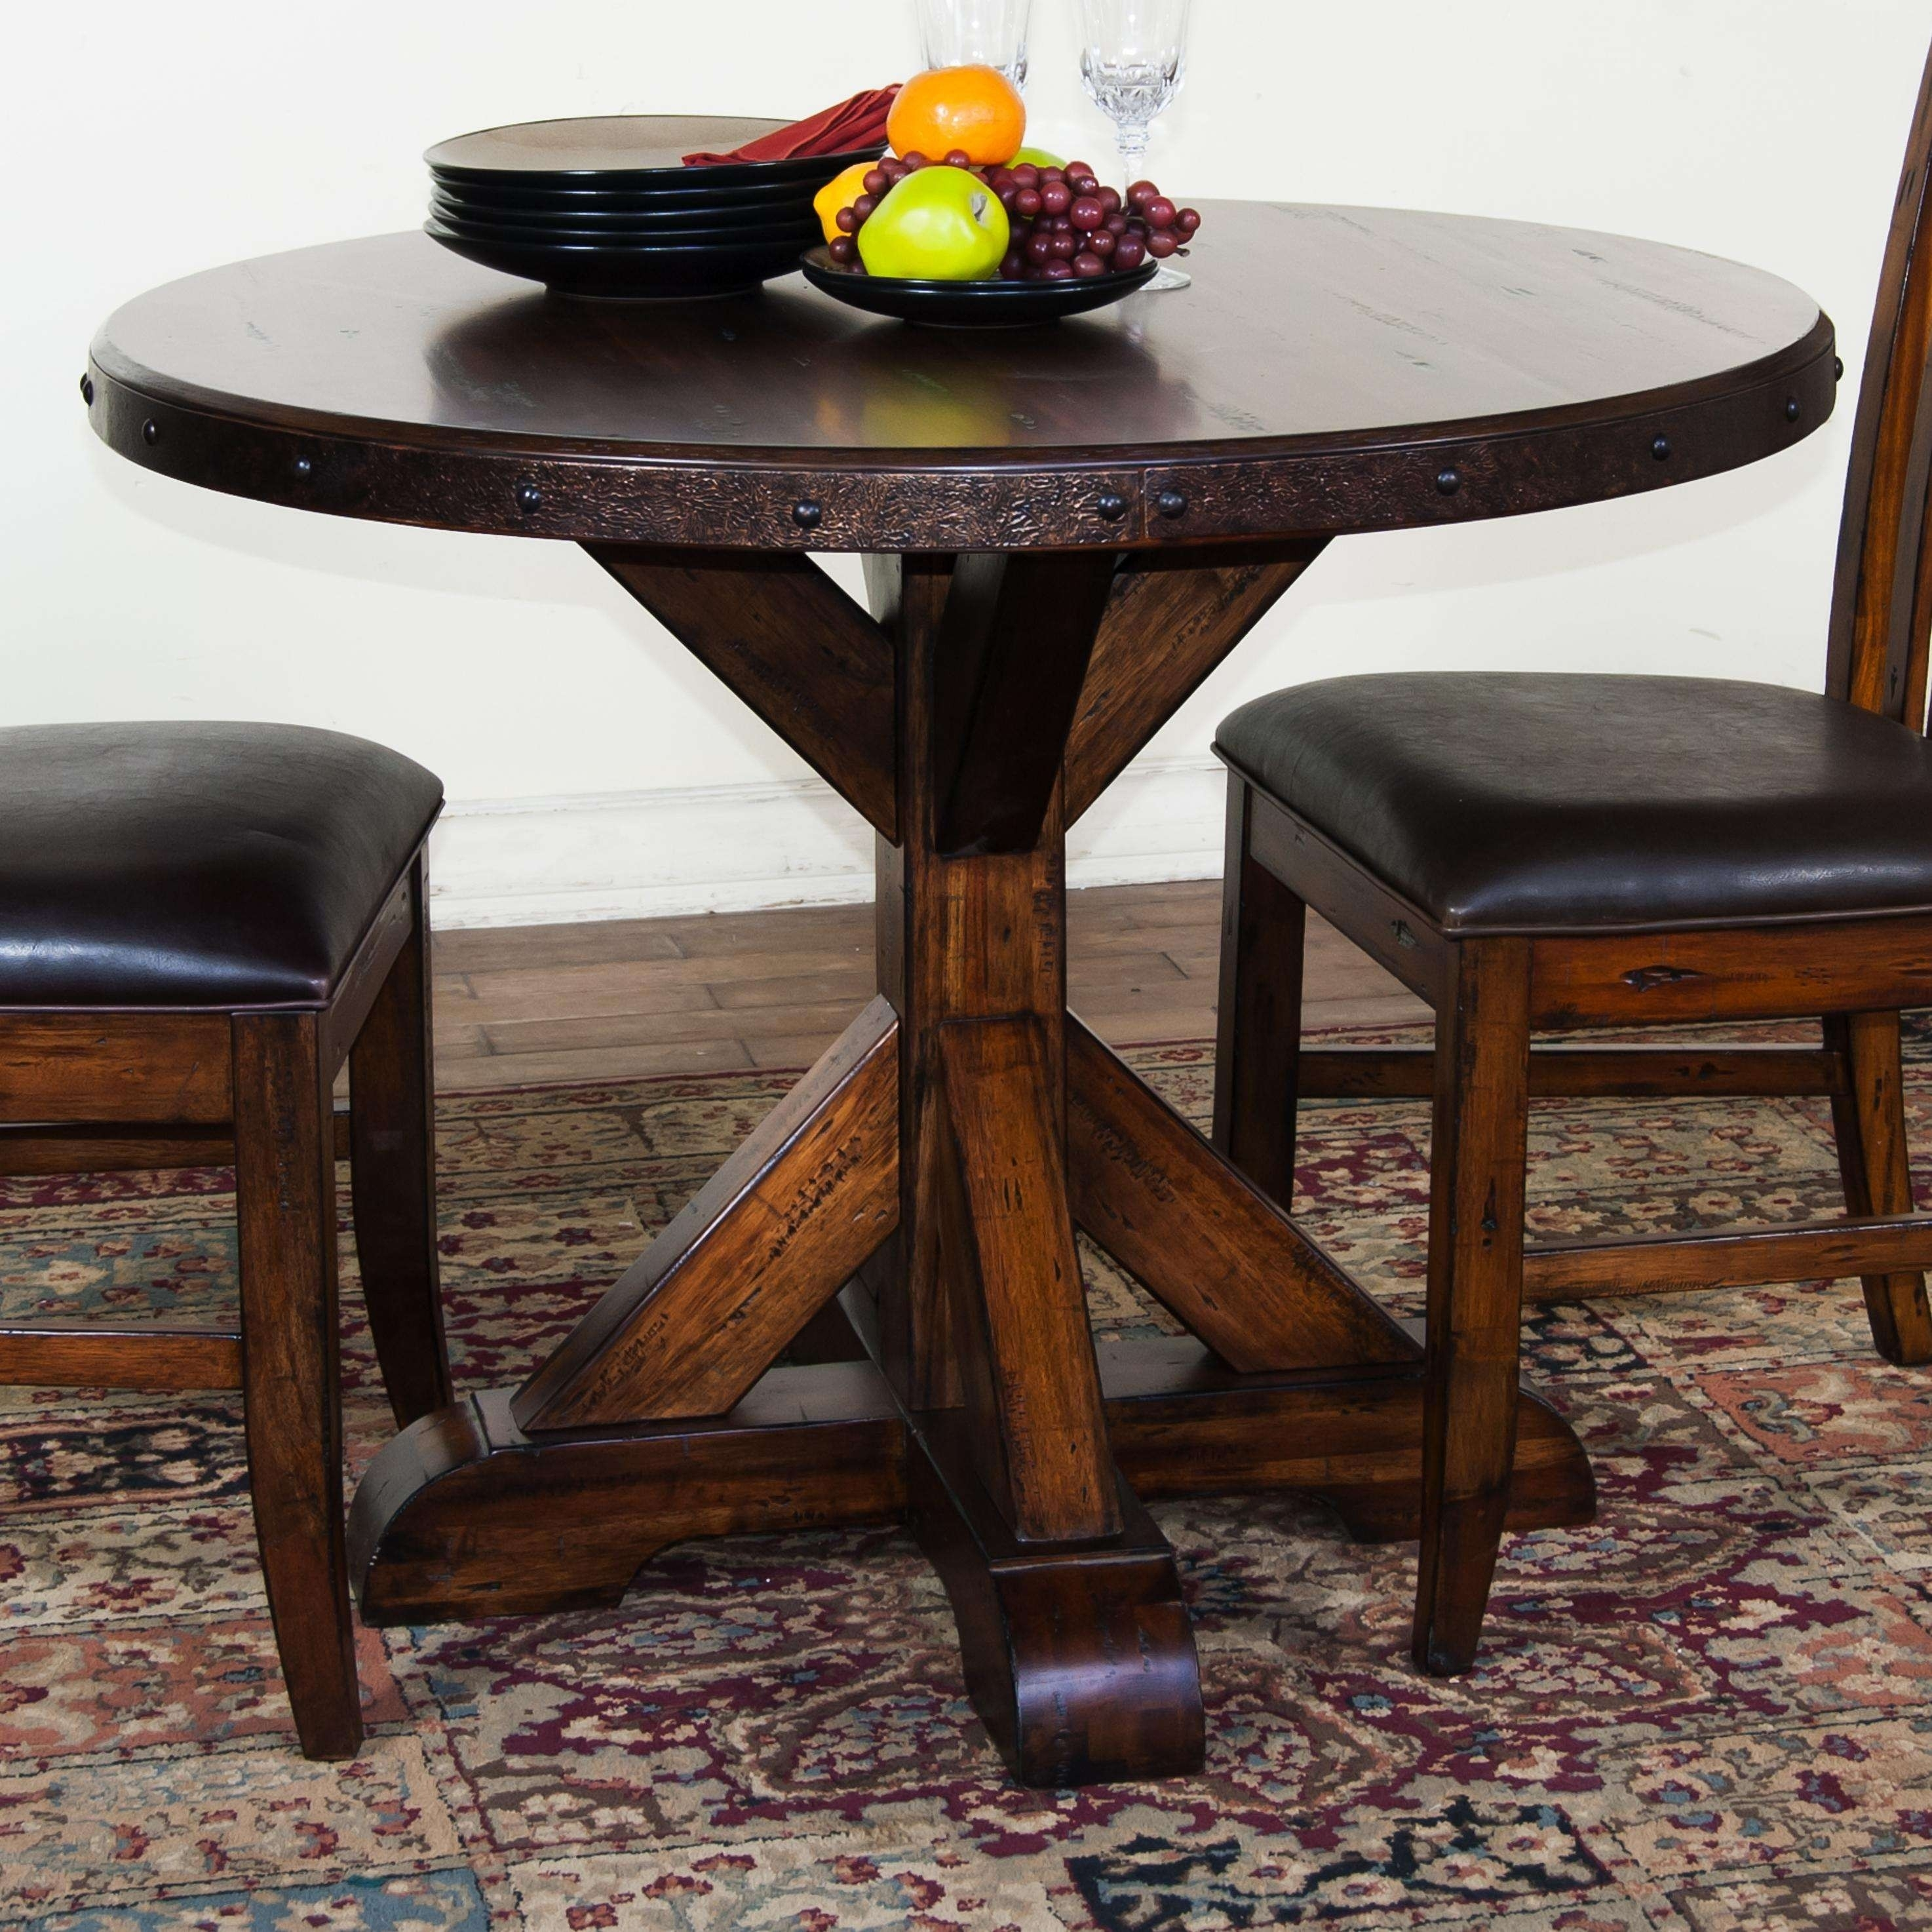 Bristol Dining Table Lovely Dining Tables Black Brown Rustic Round Intended For Most Current Magnolia Home Breakfast Round Black Dining Tables (View 18 of 20)